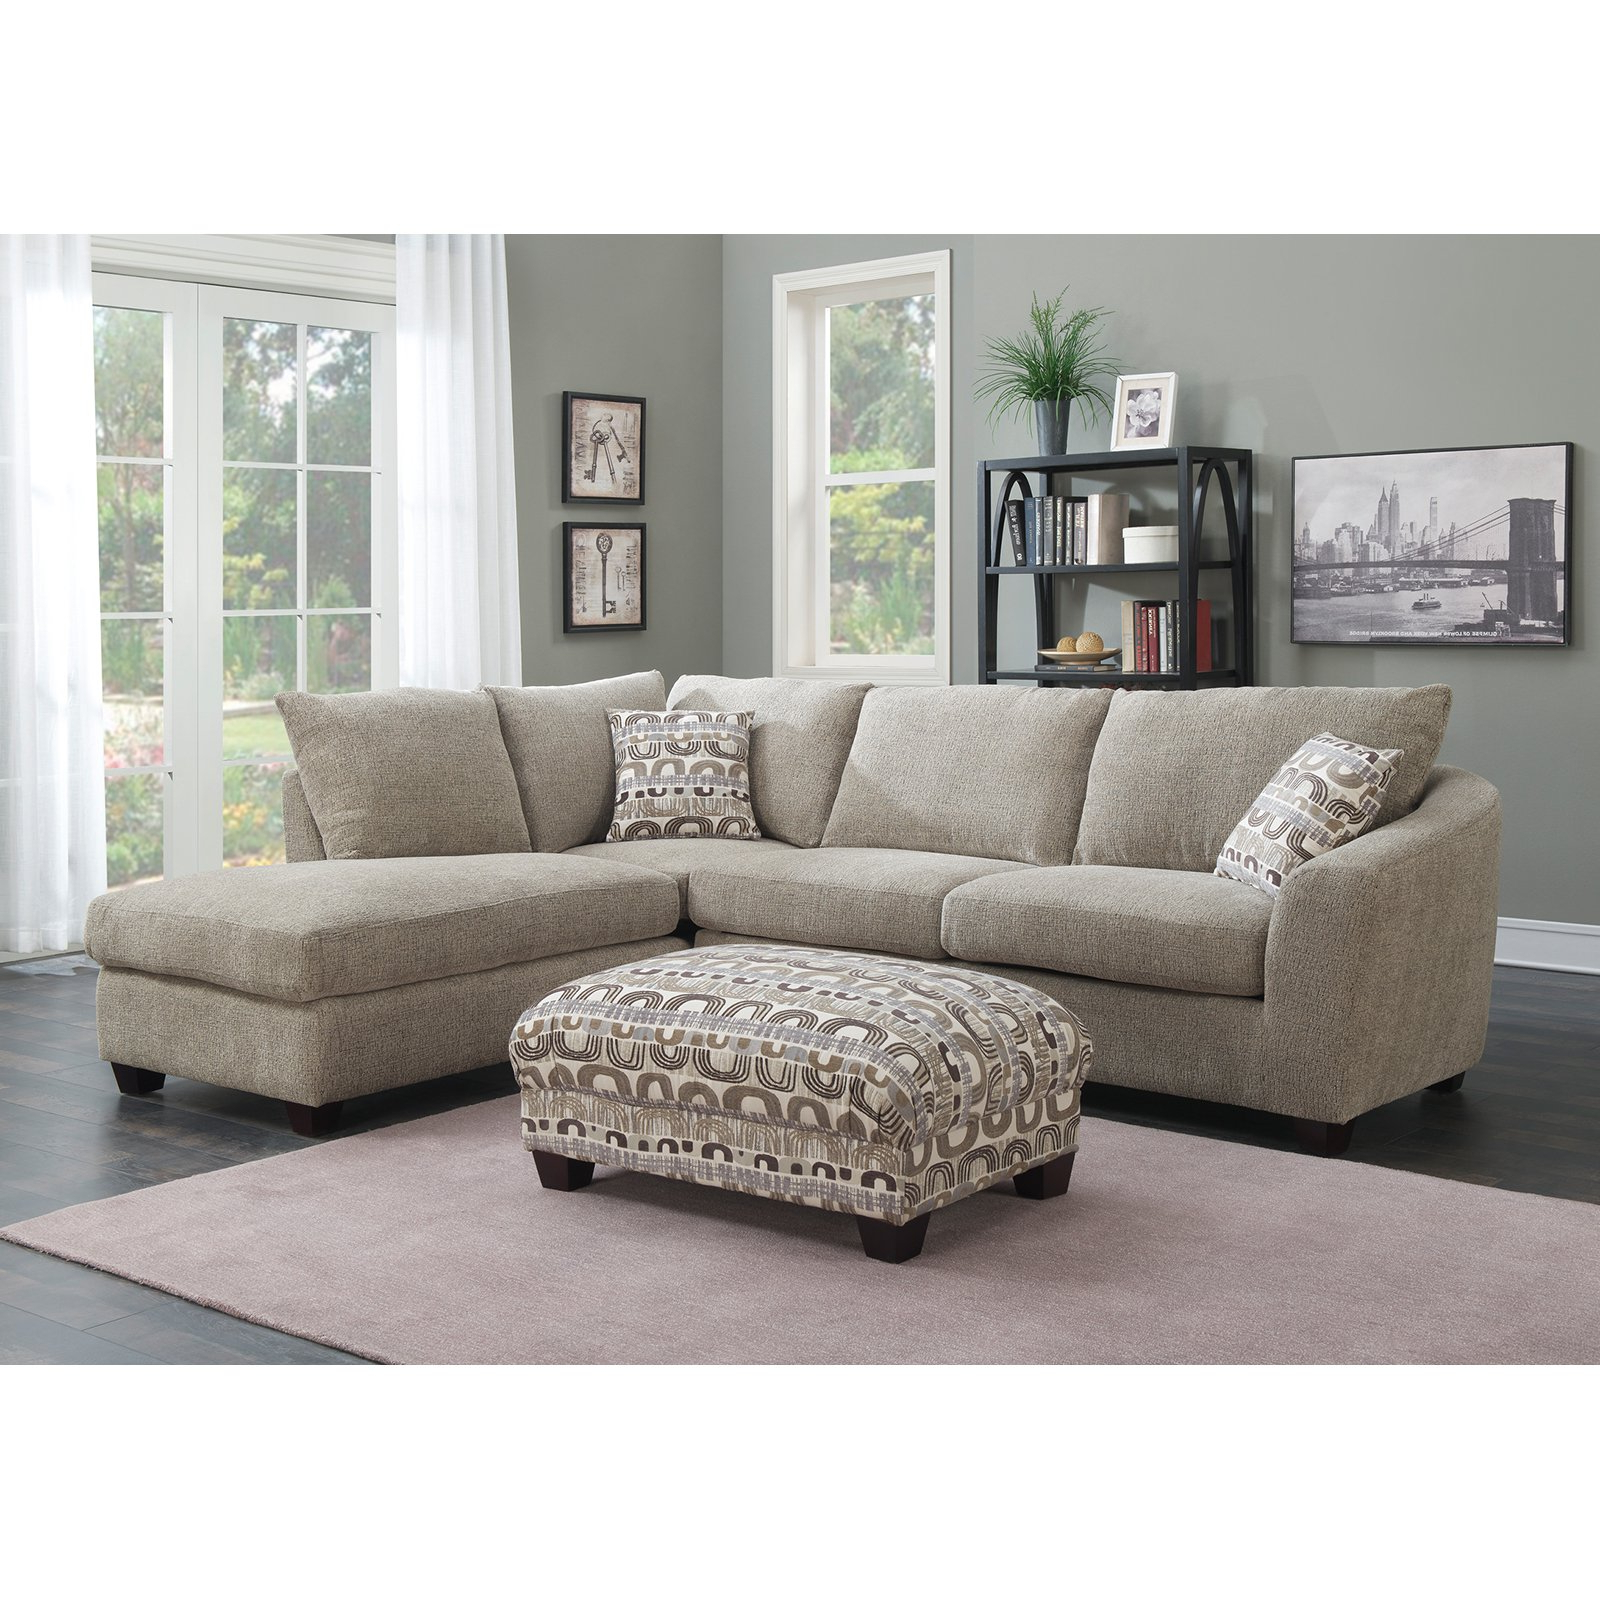 Arrowmask 2 Piece Sectionals With Raf Chaise Throughout Famous 2 Piece Sectional With Chaise – Tidex (View 9 of 20)